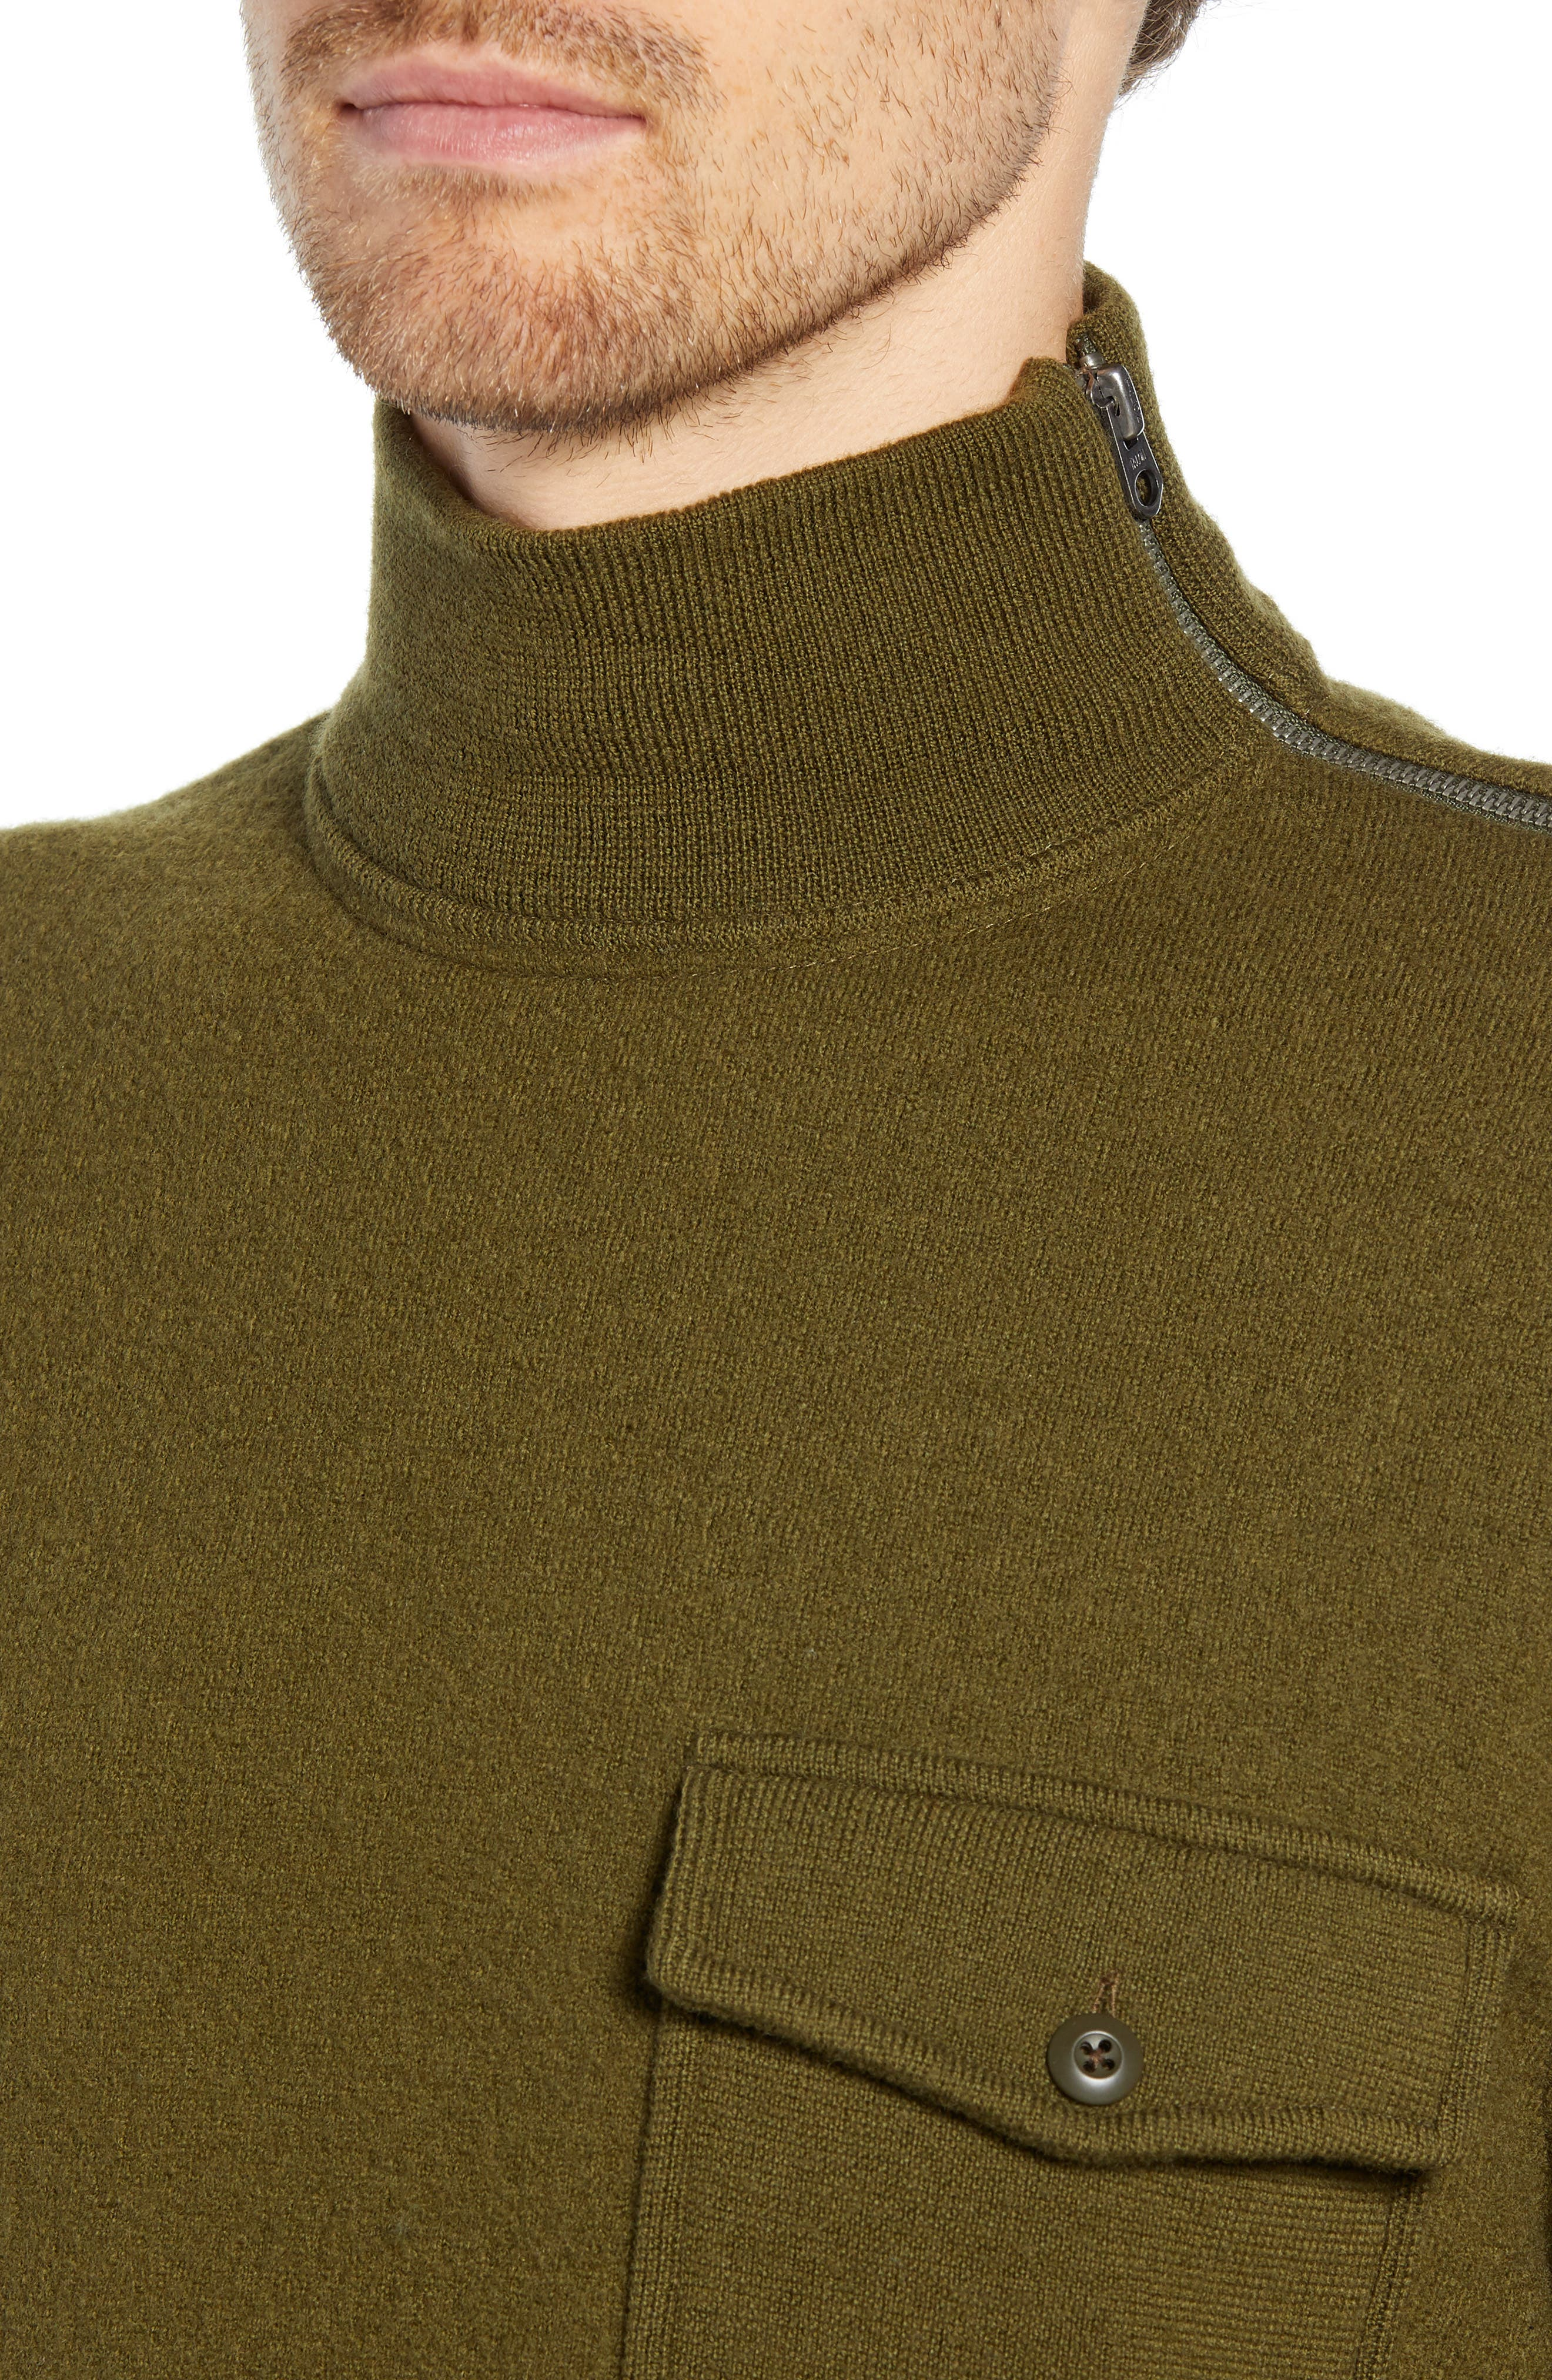 Wallace & Barnes Felted Merino Wool Mock Neck Pullover,                             Alternate thumbnail 4, color,                             ORCHARD GREEN